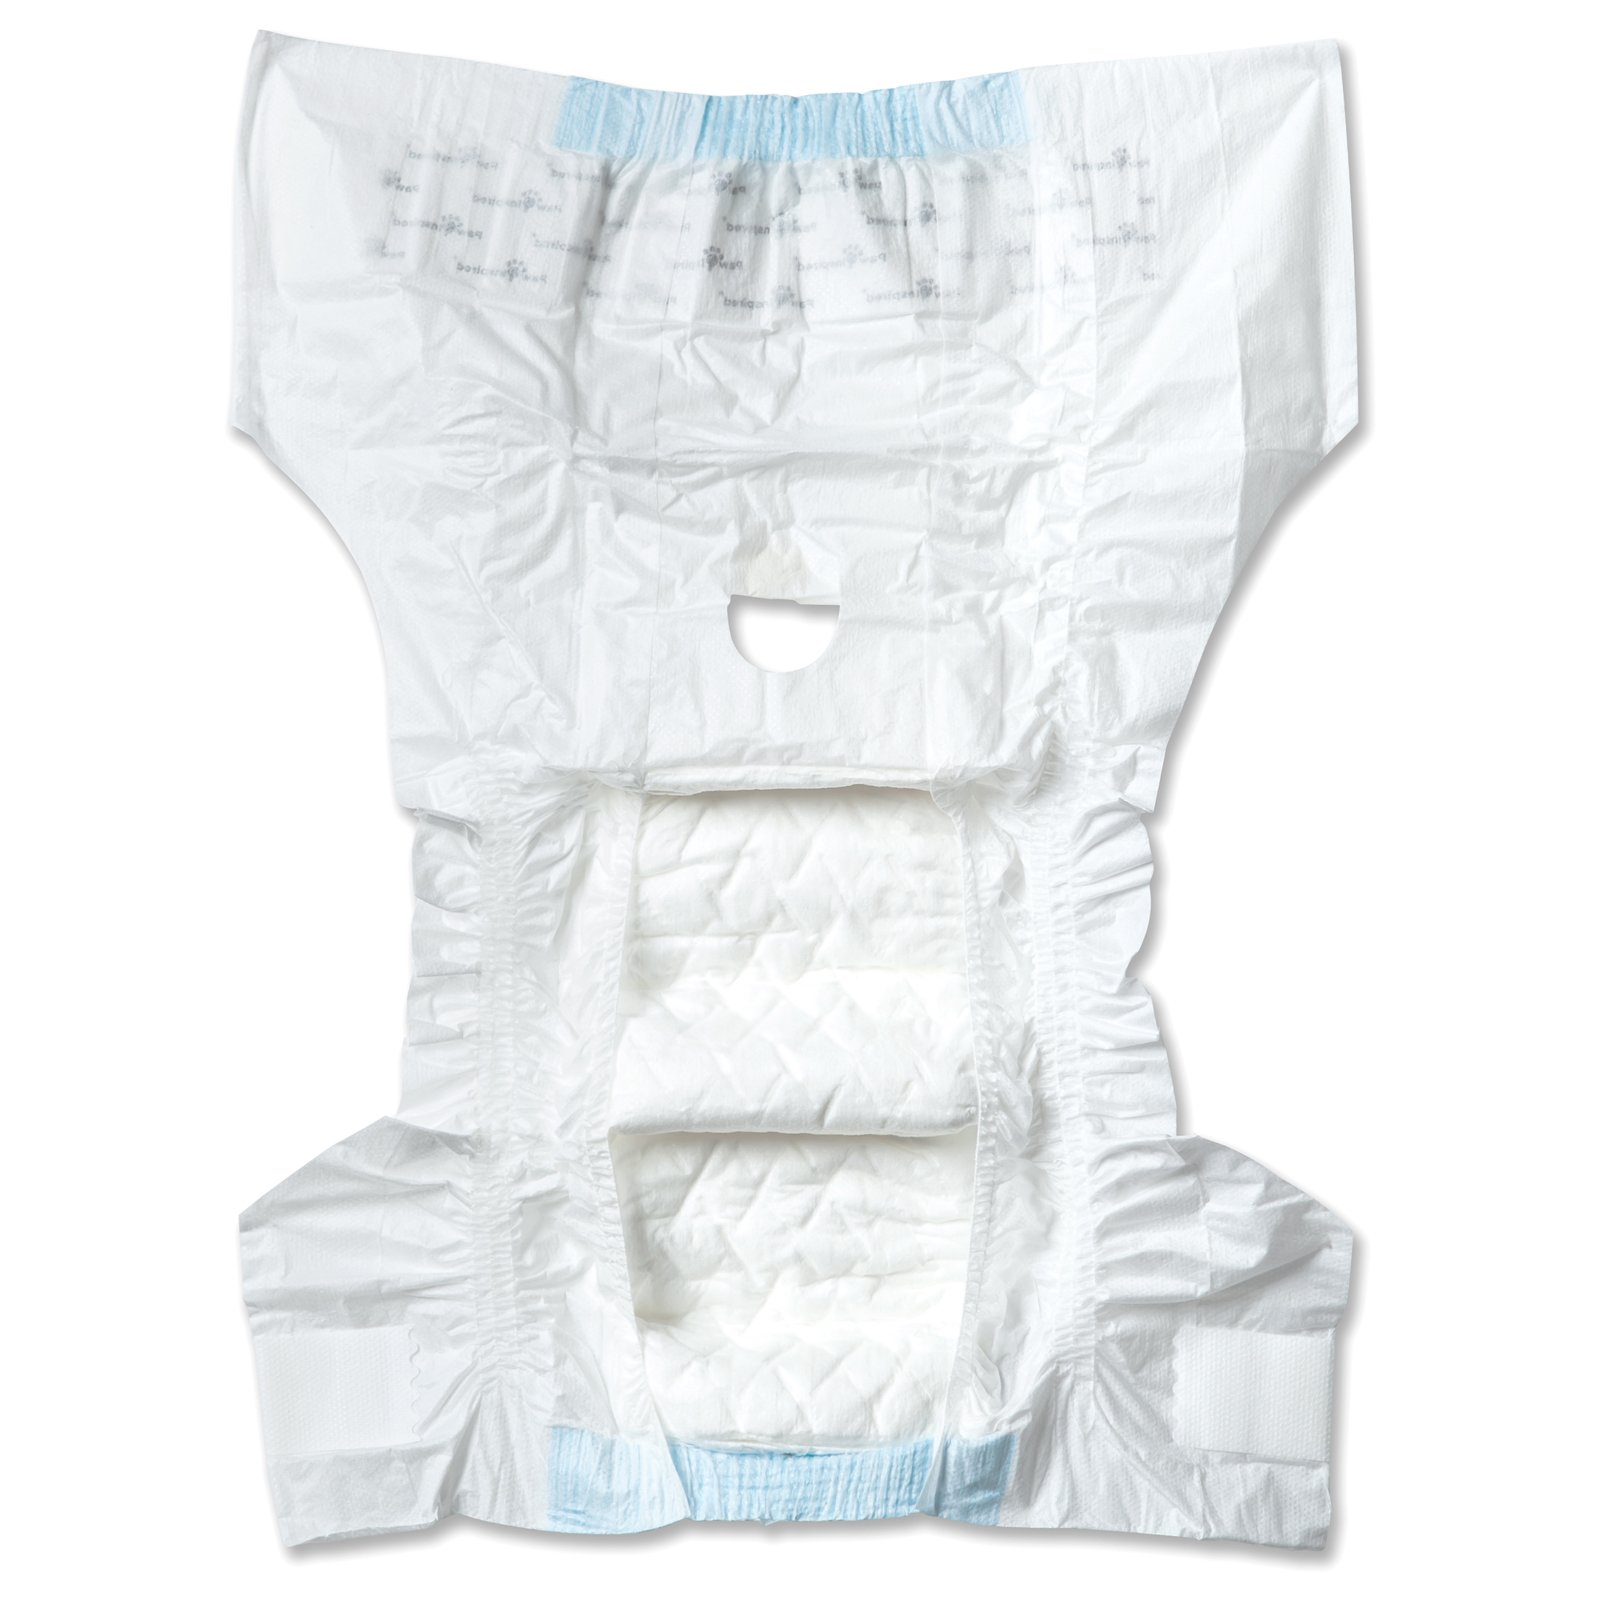 Paw Inspired 144 ct Ultra Protection Female Disposable Dog Diapers Bulk by Paw Inspired (Image #3)